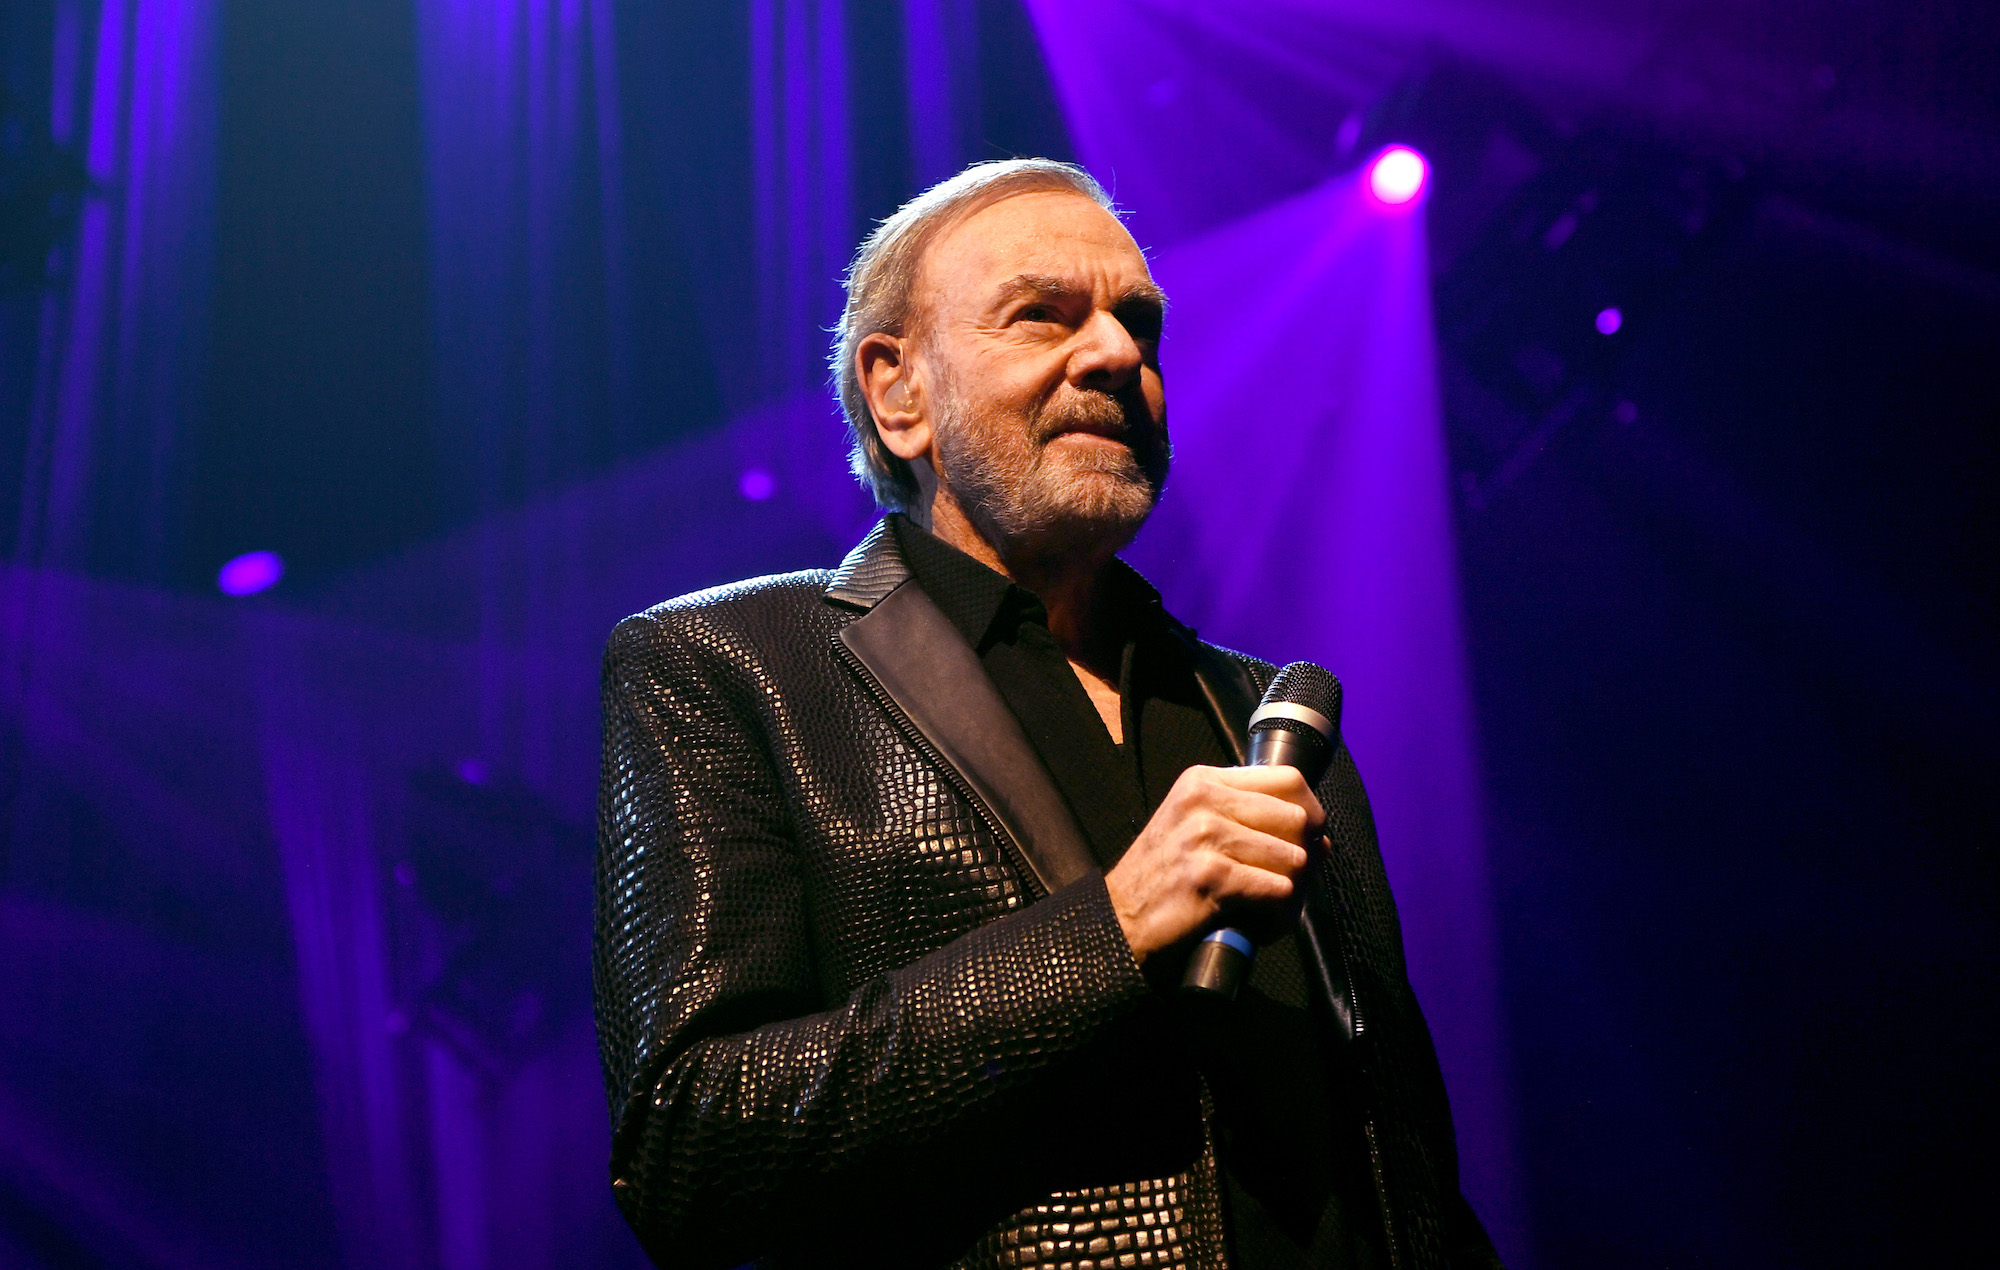 """""""Hands… washing hands"""": Neil Diamond gives coronavirus advice while playing 'Sweet Caroline' in his house - EpicNews"""